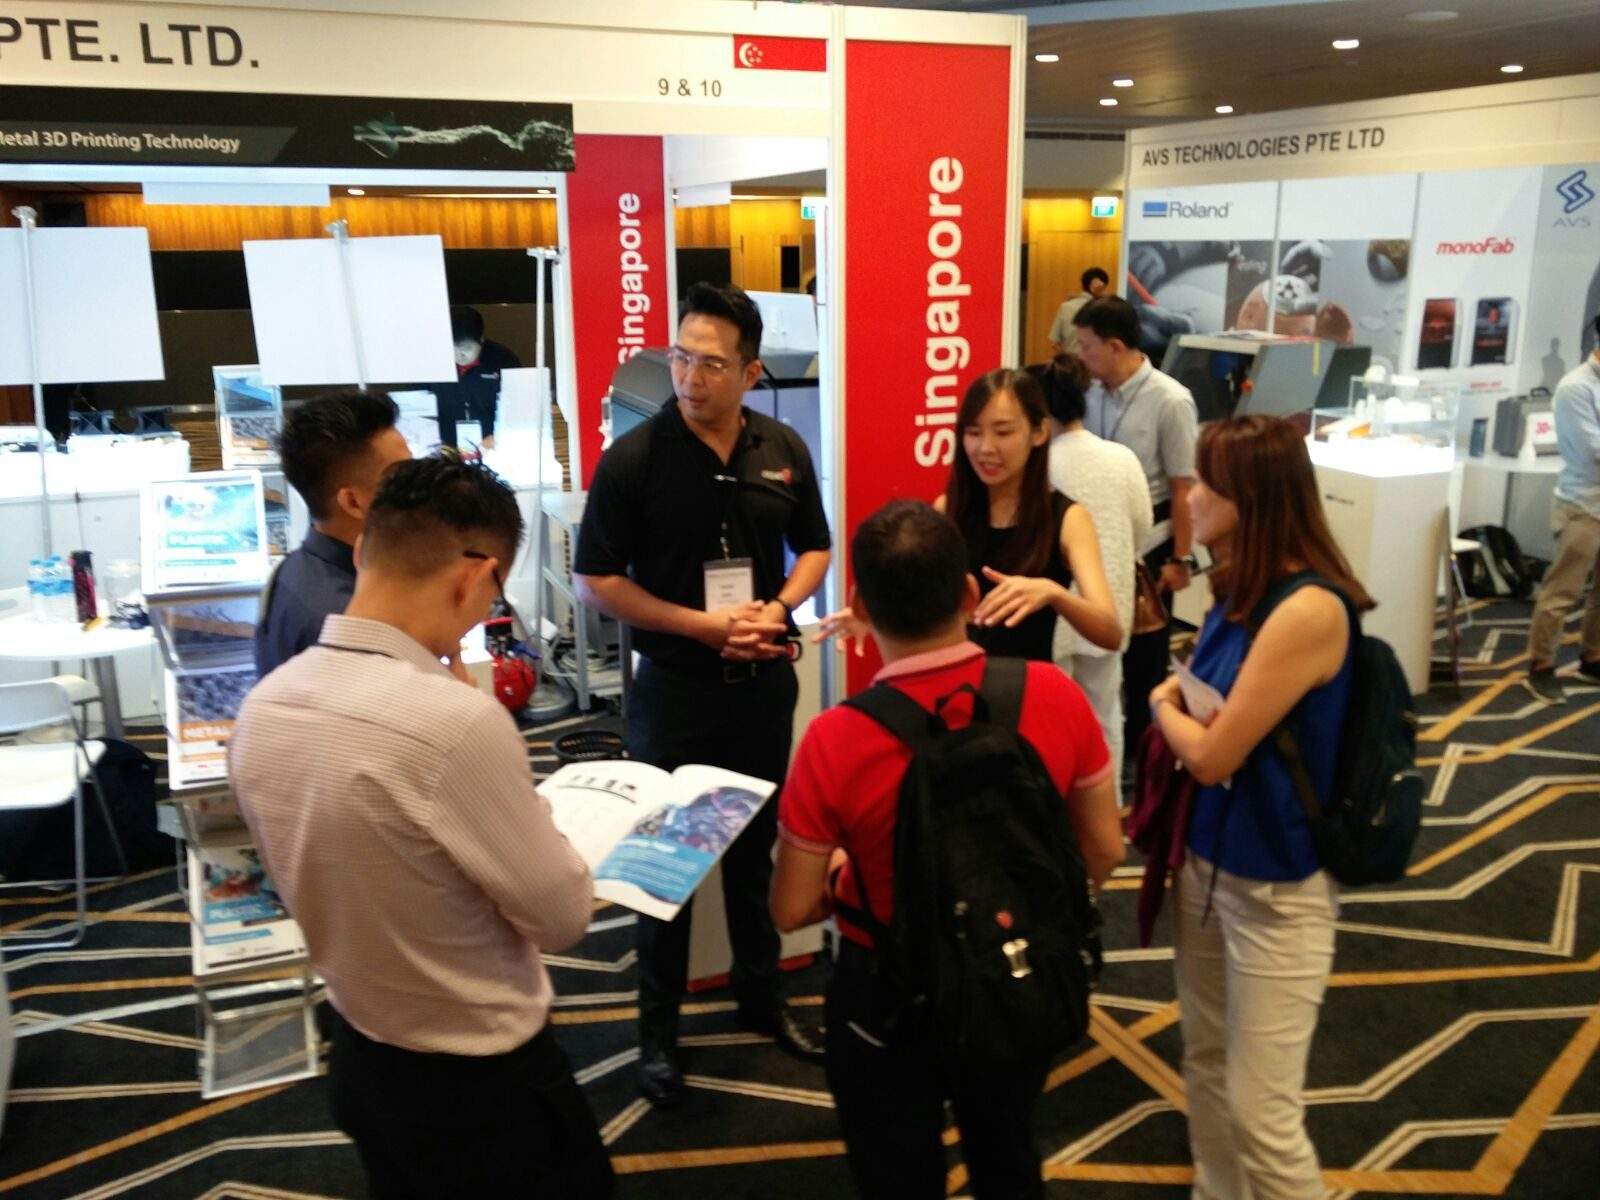 D Printing Exhibition In Singapore : Inside d printing conference expo singapore creatz